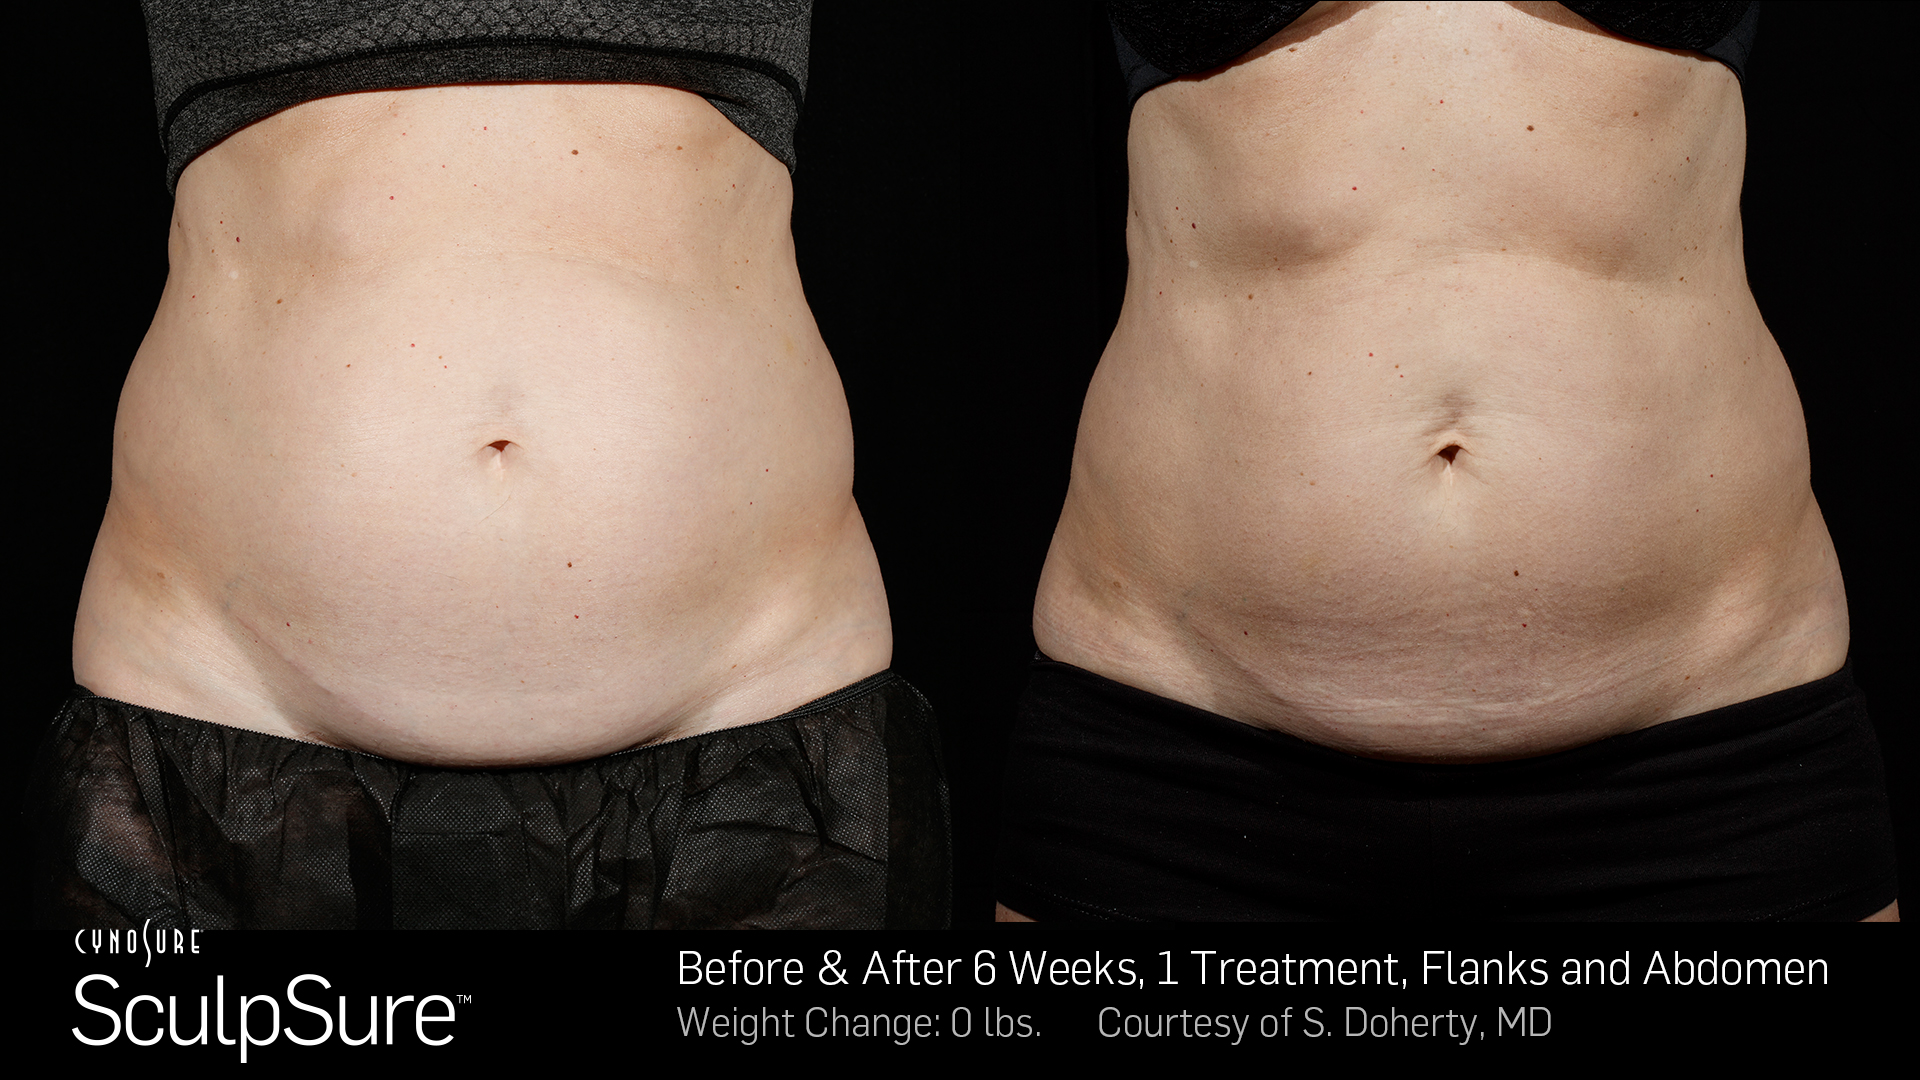 BA-SculpSure-SBS-Doherty-1TX-6Wks-2